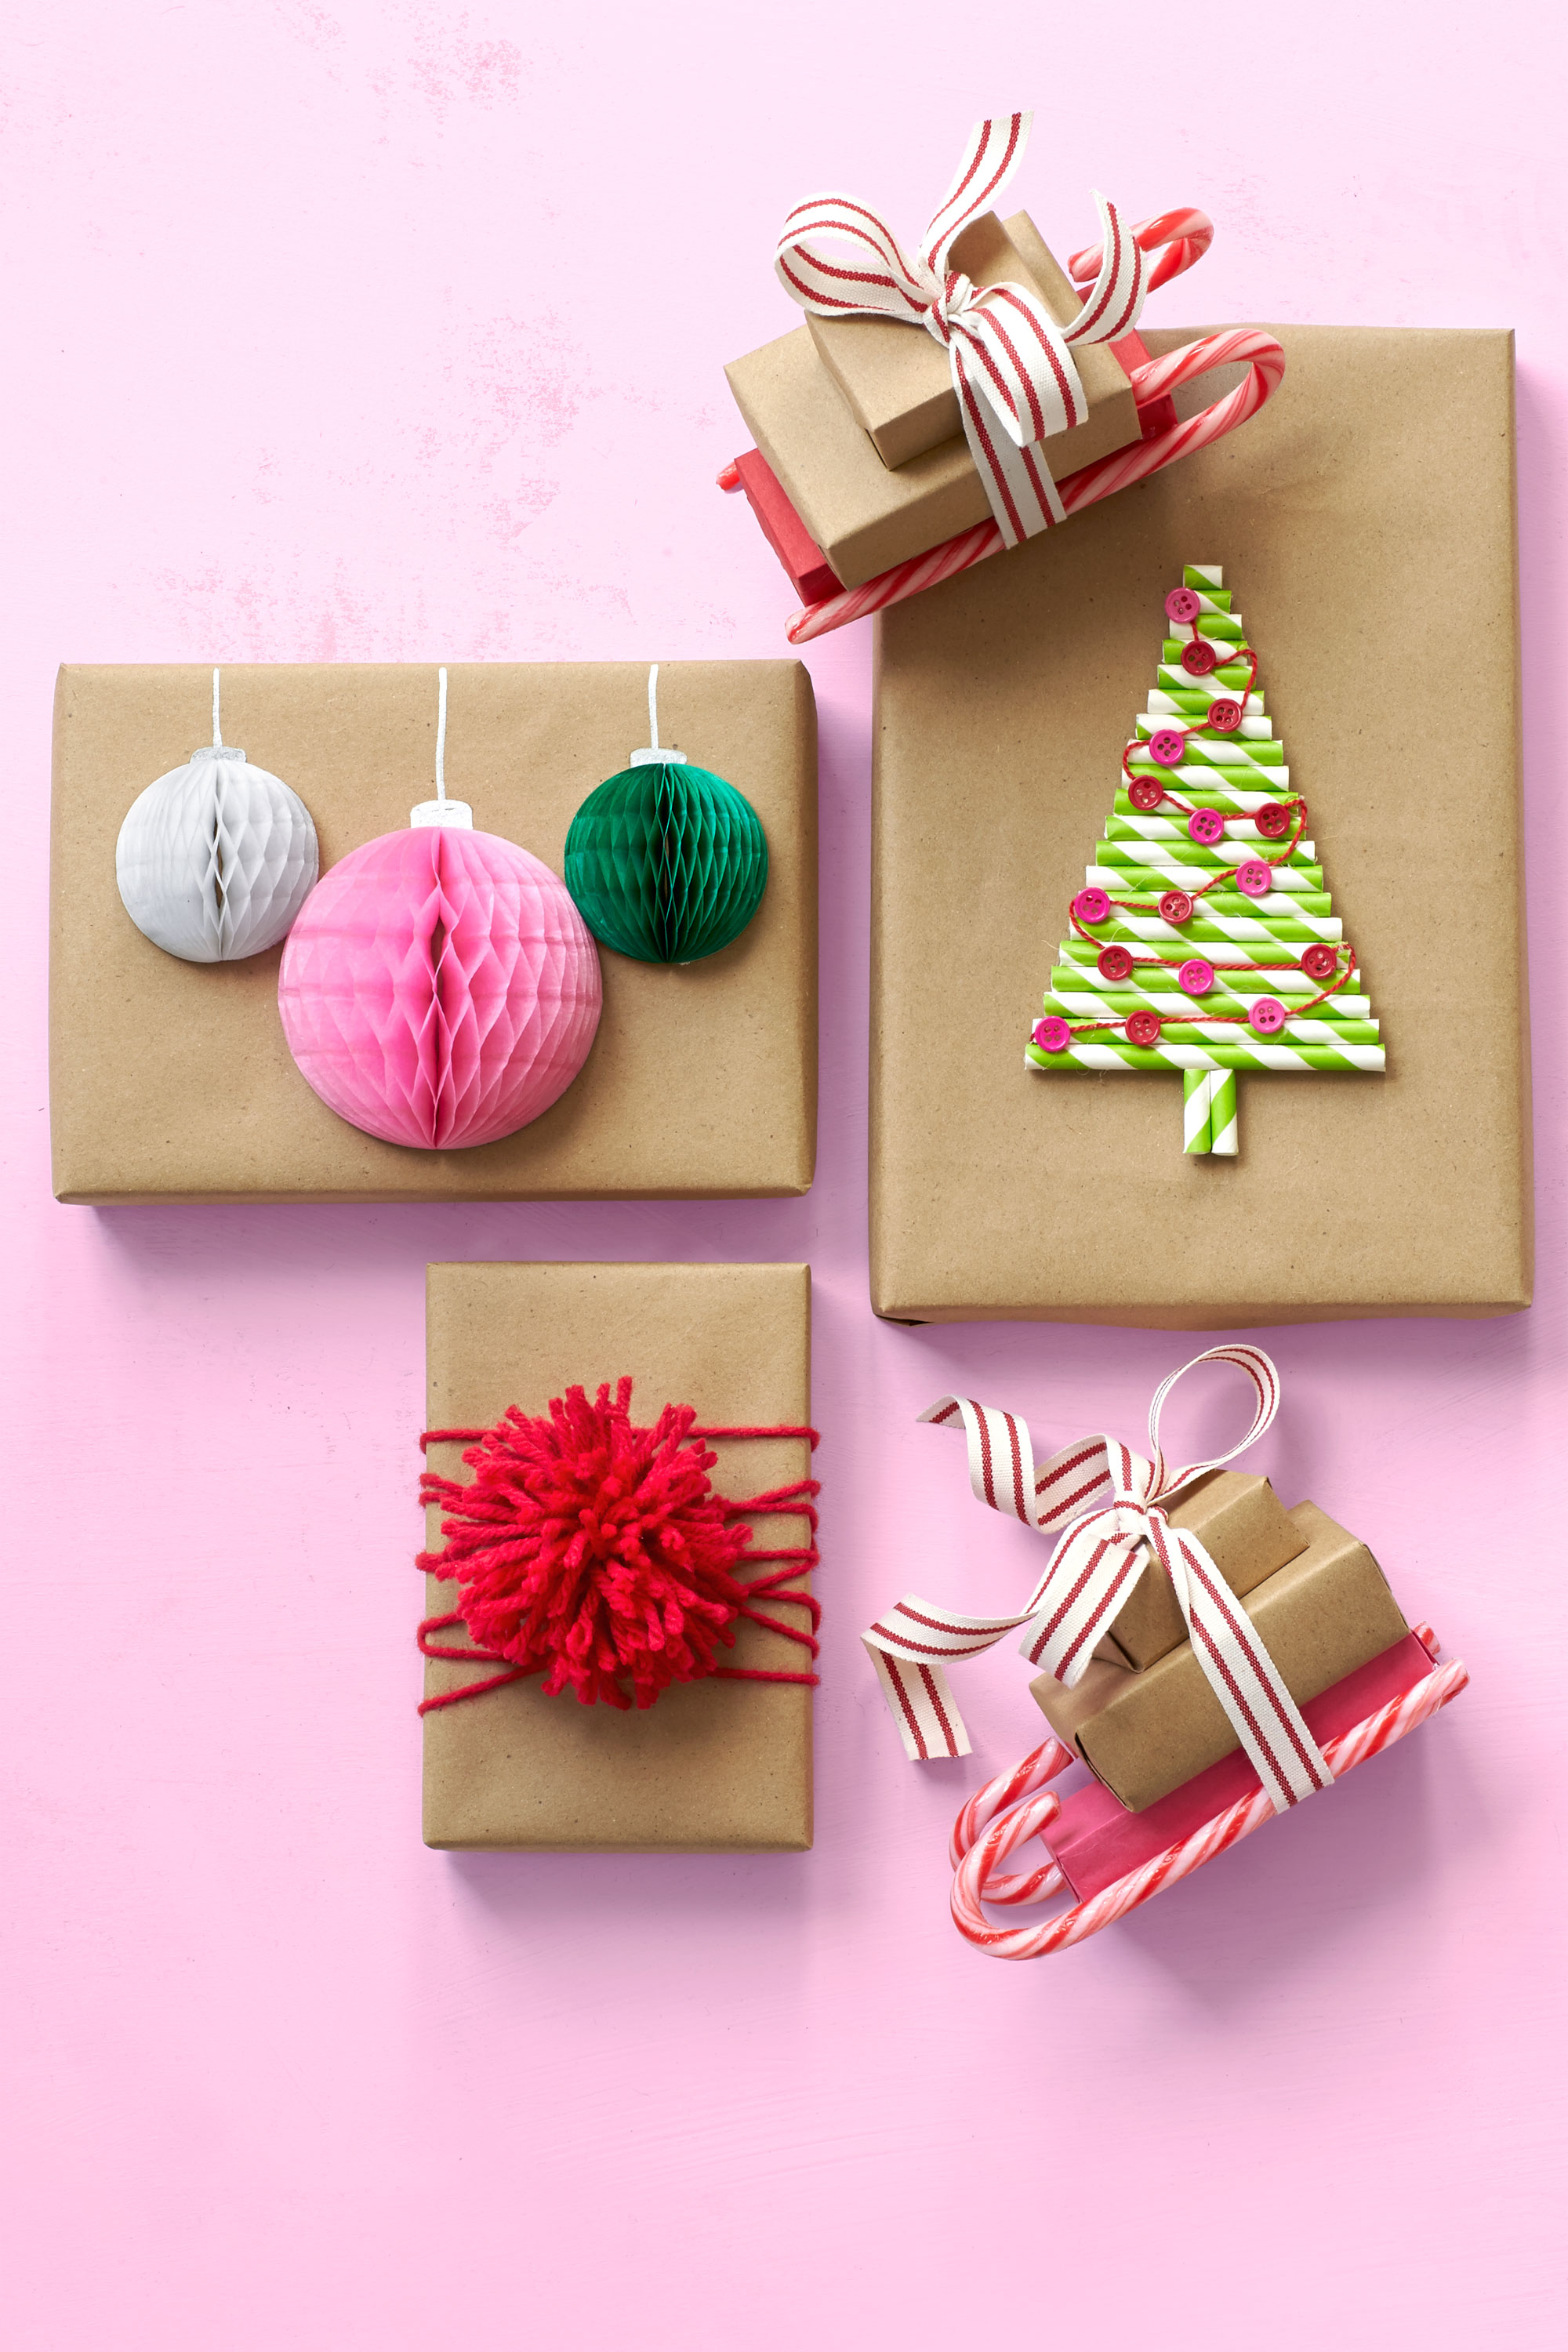 60 DIY Homemade Christmas Gifts Craft Ideas for Christmas Presents